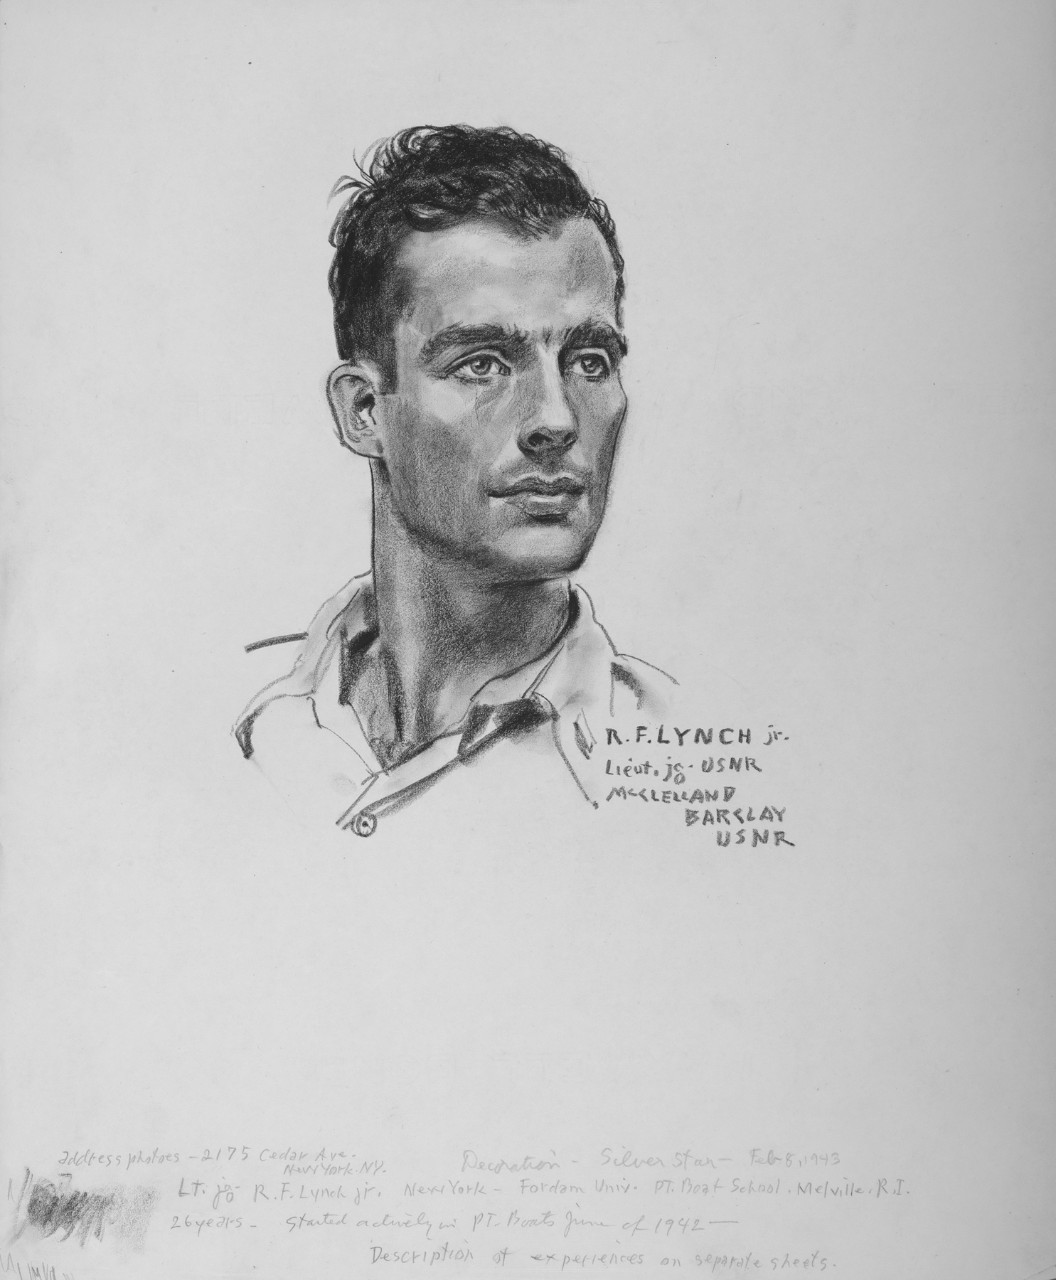 Portrait of LT(jg) R.F. Lynch, Jr.